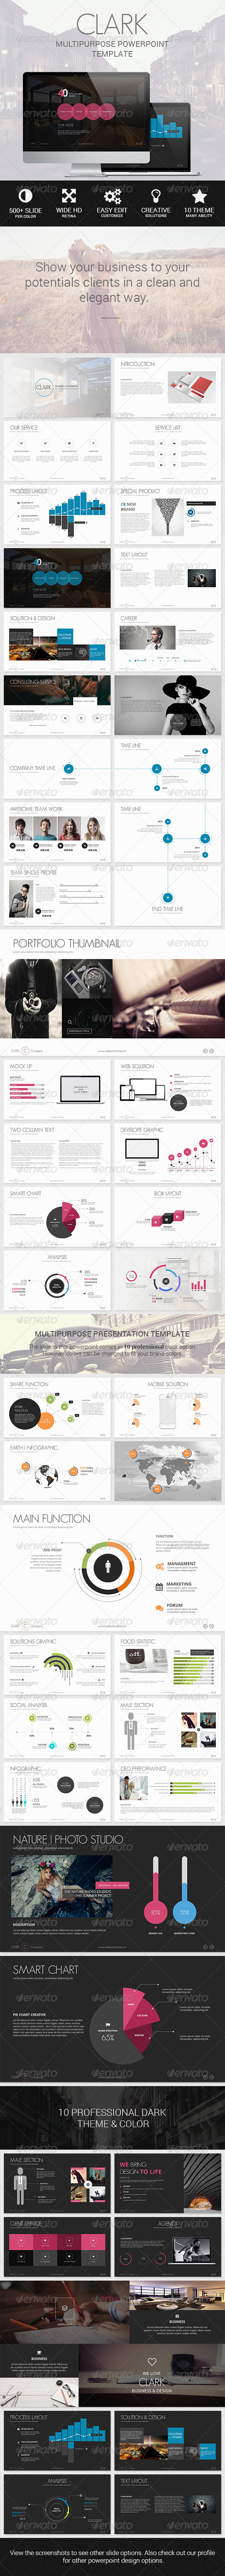 GraphicRiver Clark Business & Marketing Creative Template 8324349